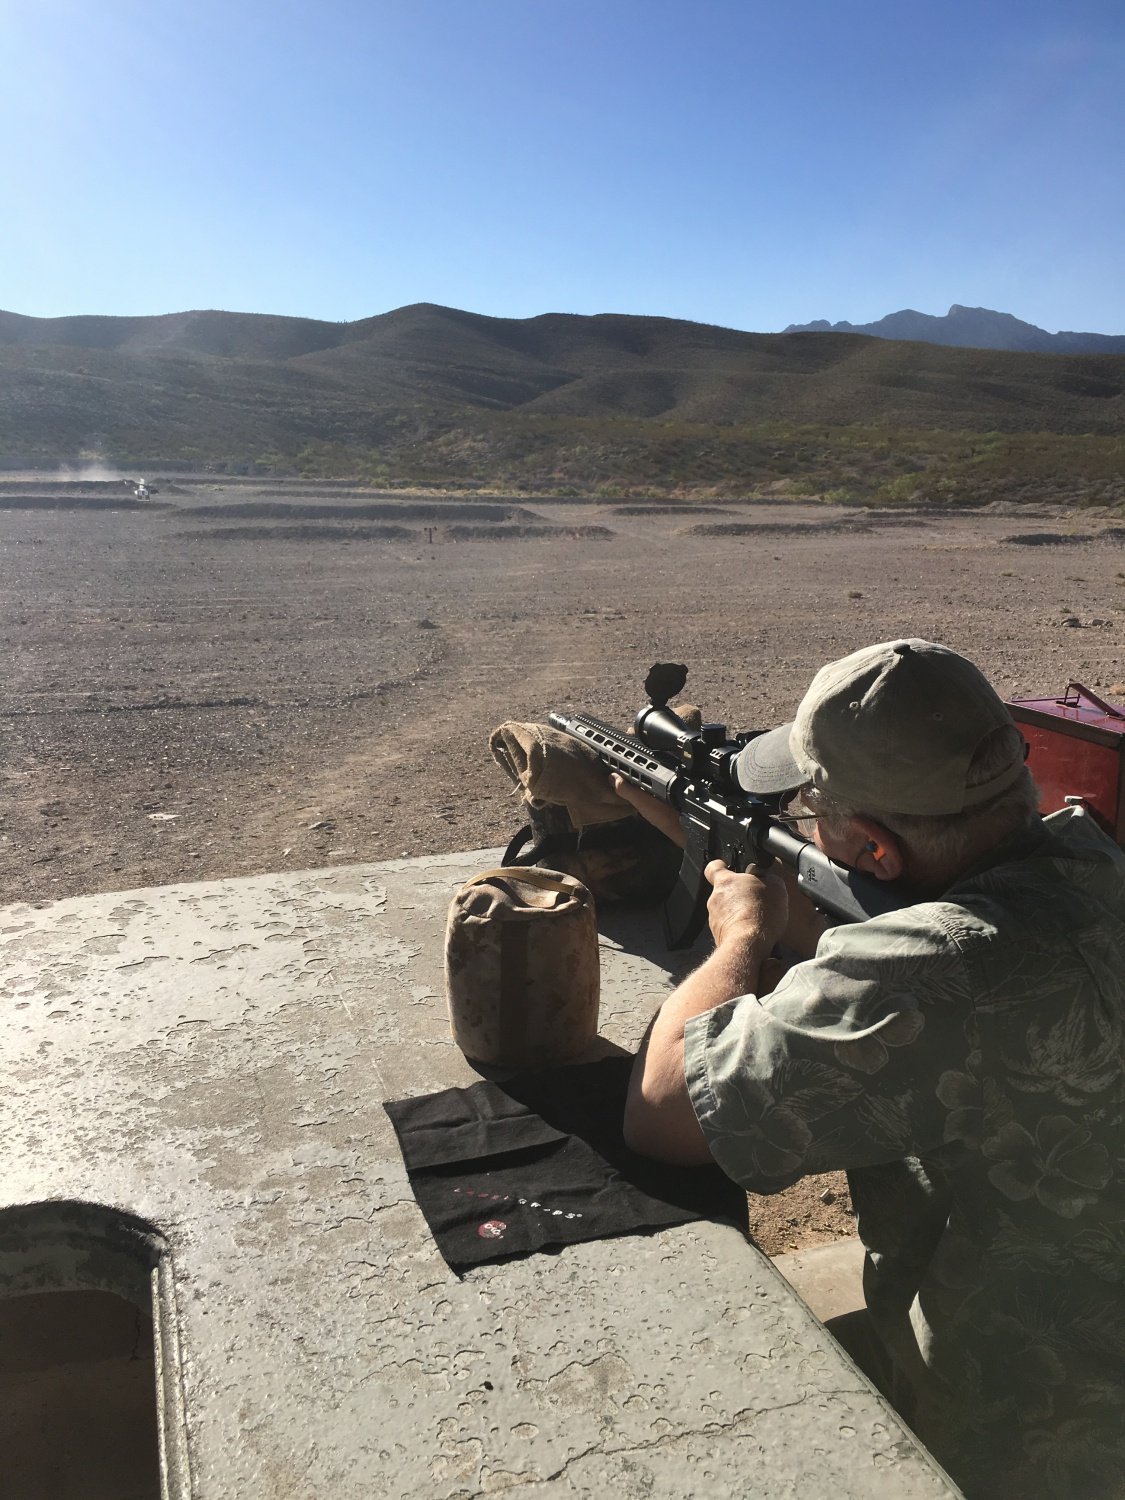 My FFL dealer and friend, Ed Solomon of SImcha Wholesale playing with the RRA LAR-47 X-1, this time at the El Paso Gun Club.